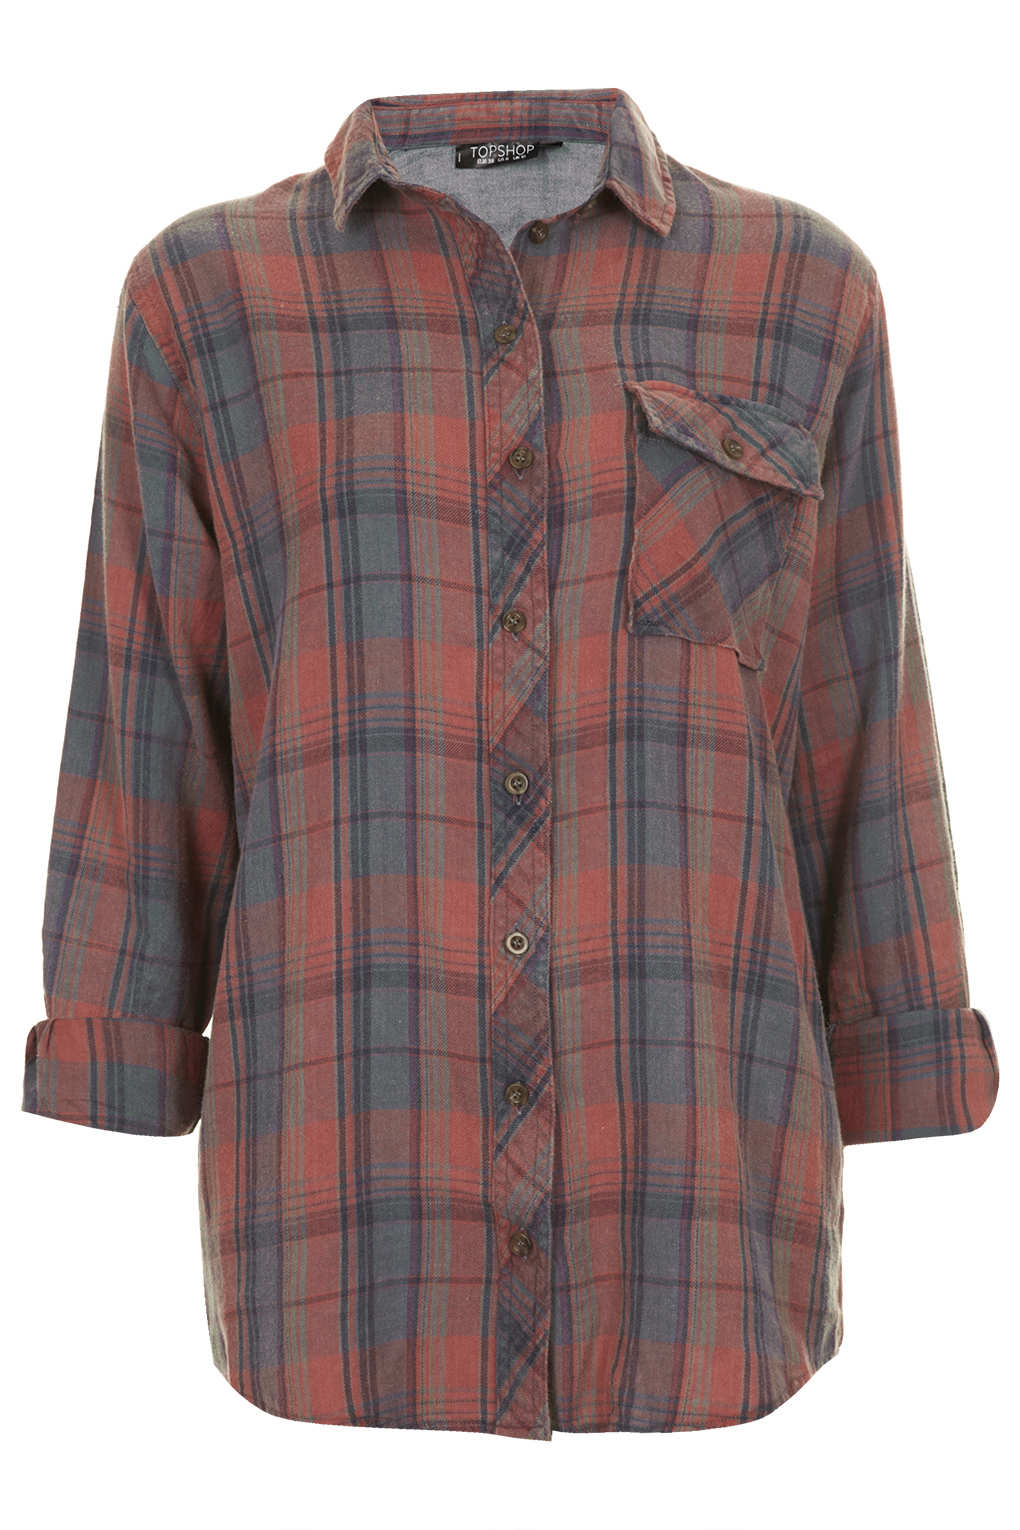 Topshop oversized check shirt in multicolor multi lyst for Womens denim shirts topshop